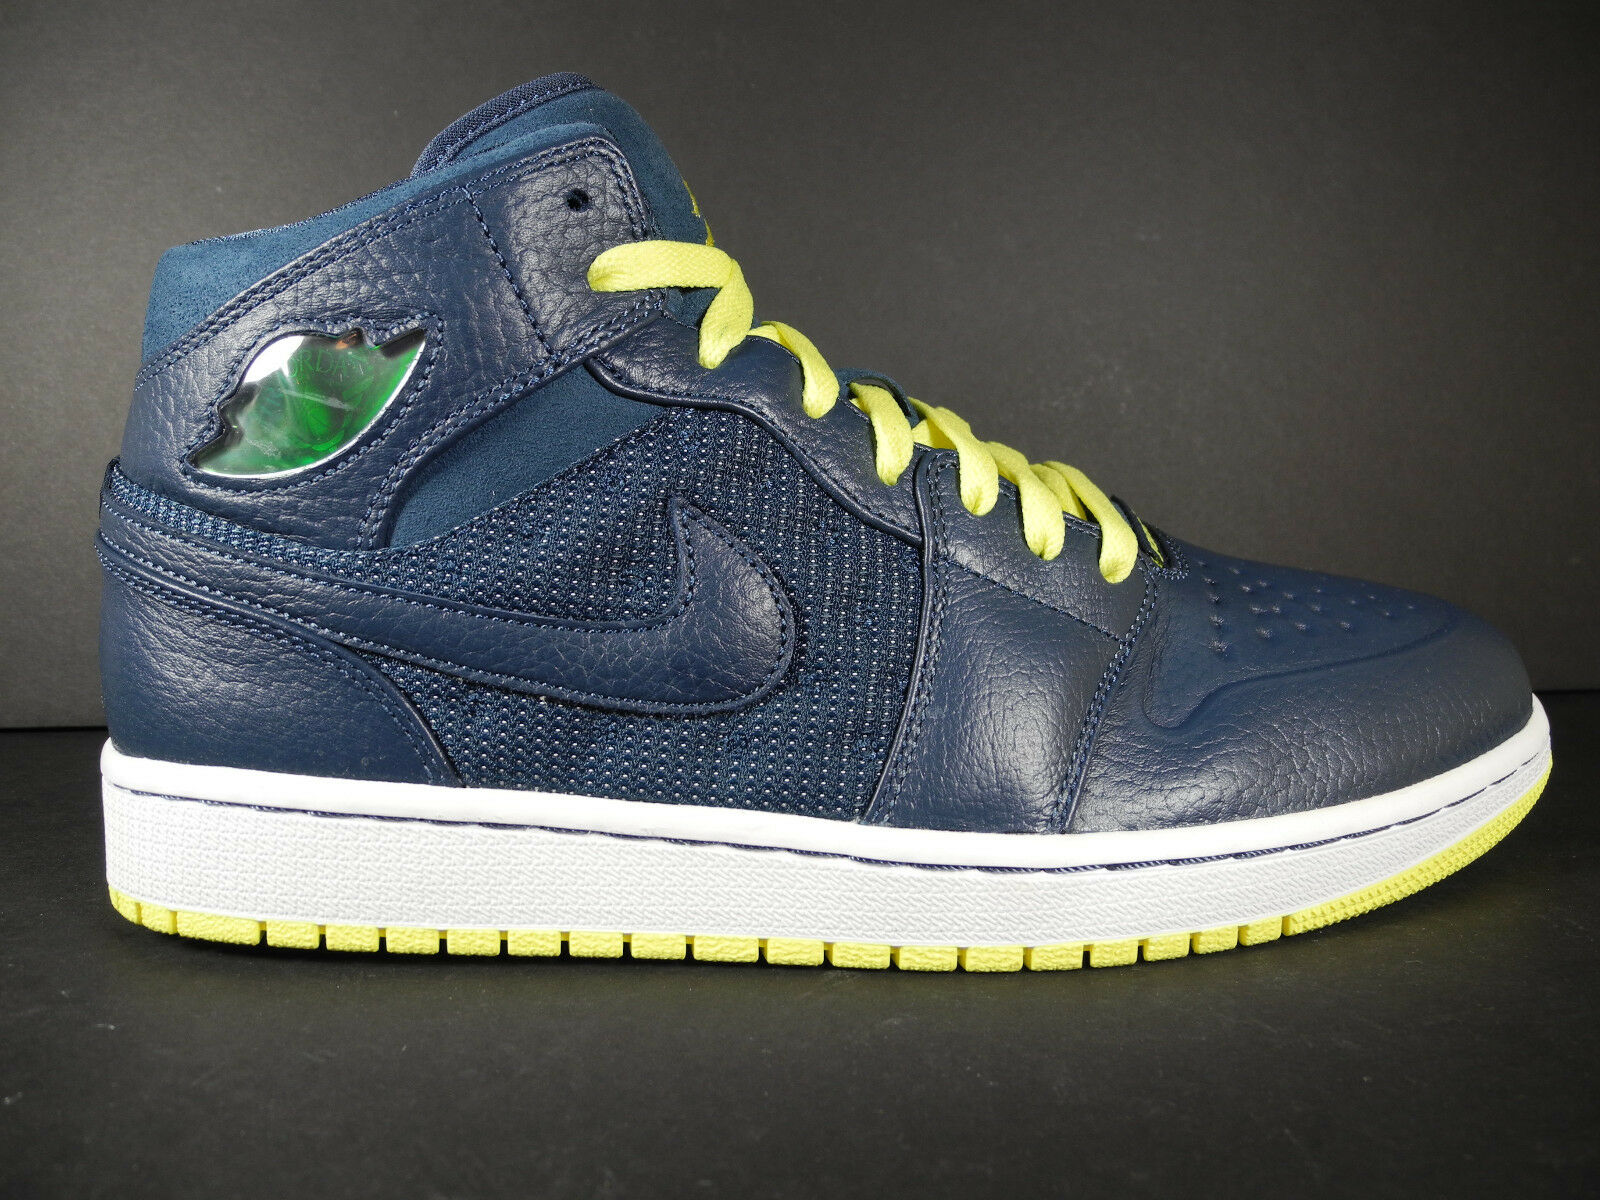 NEW Nike AIR JORDAN 1 RETRO '97 TXT Men's Basketball Shoes Comfortable The most popular shoes for men and women